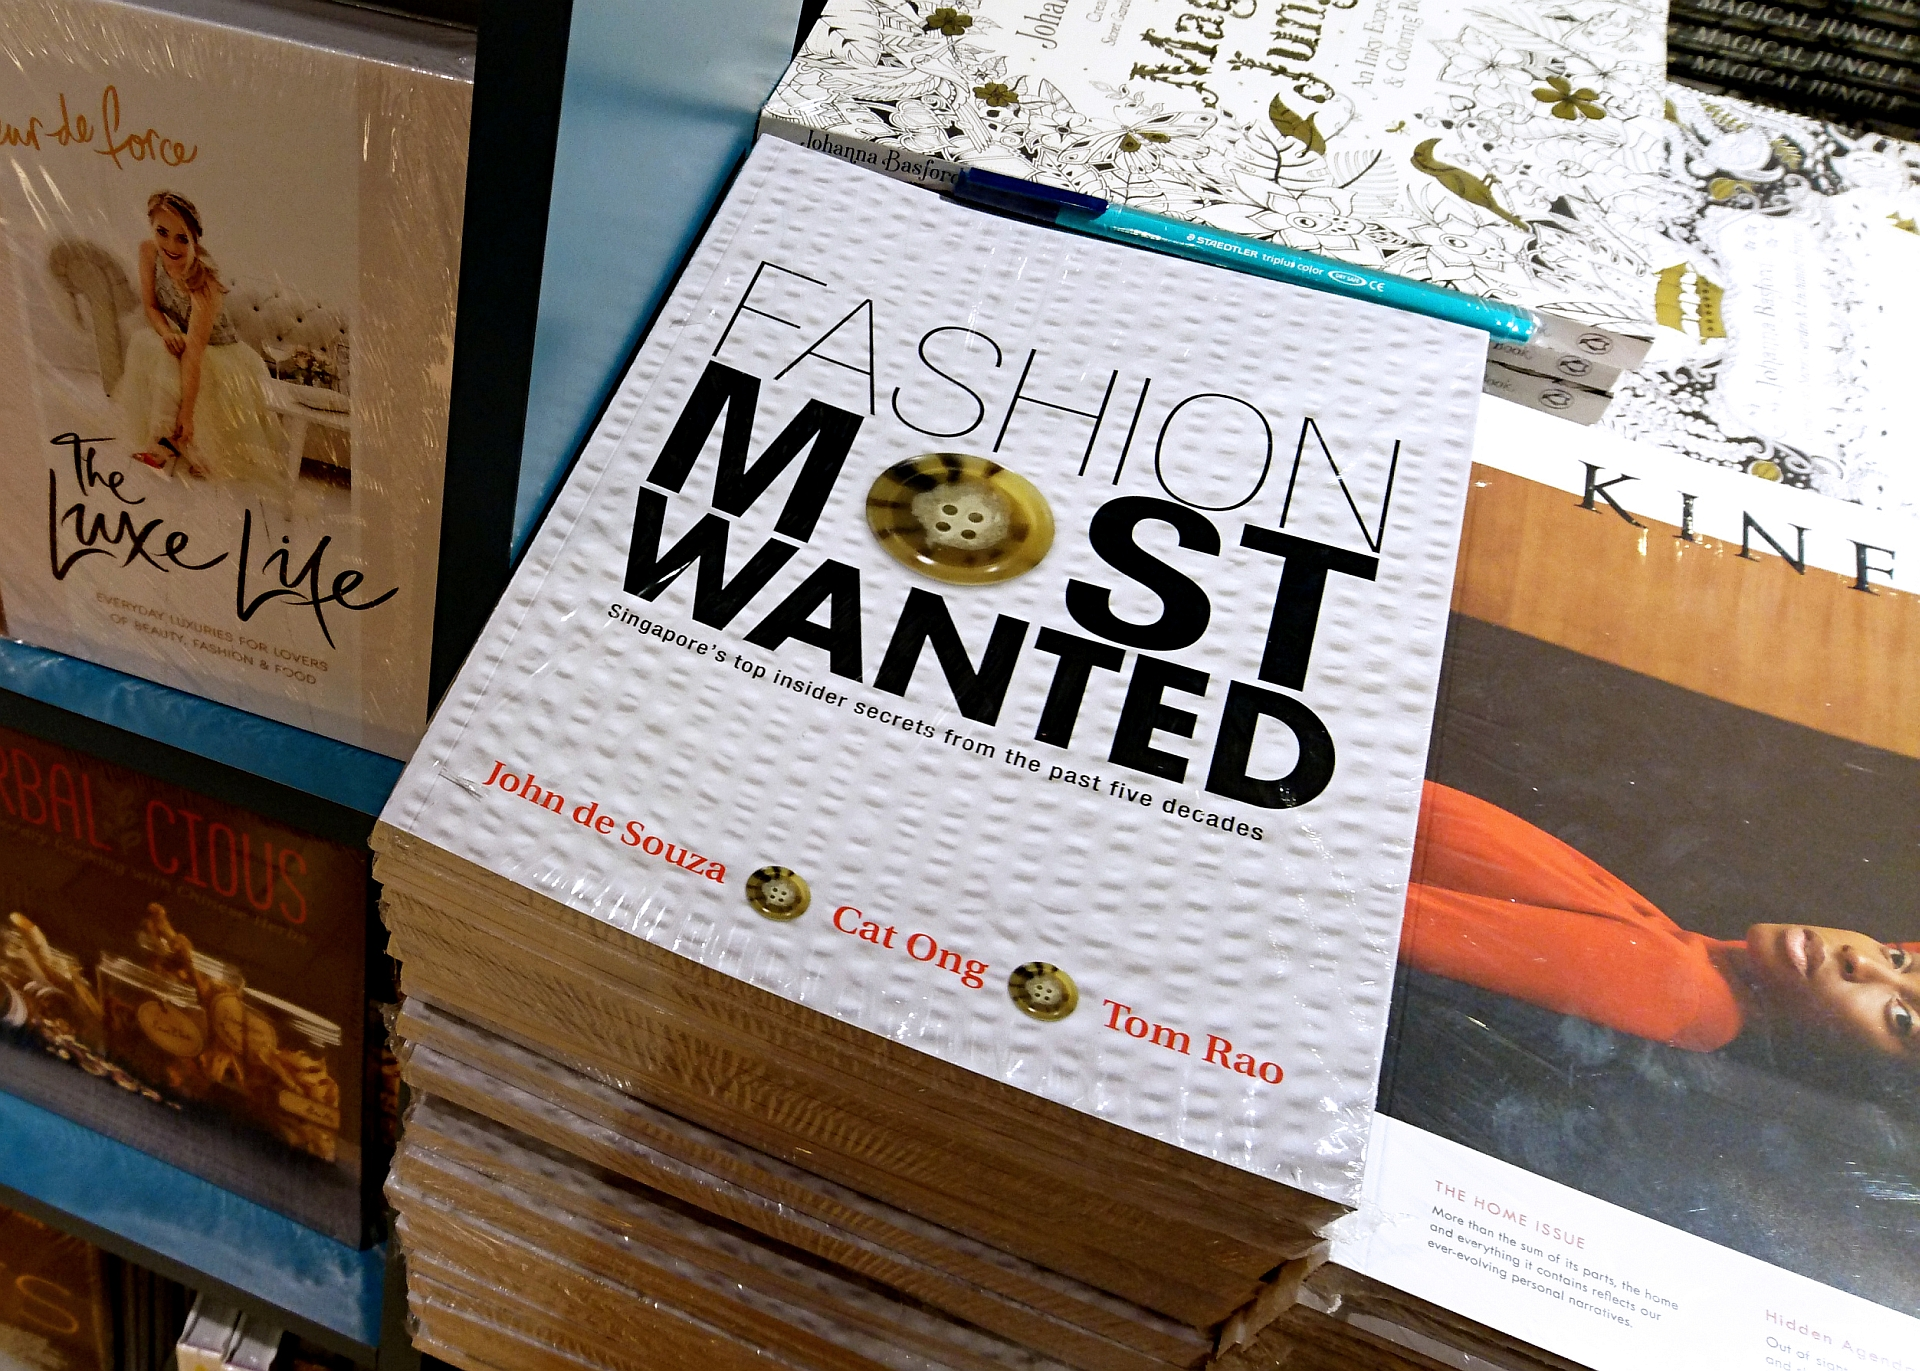 Fashion Most Wanted pic 2.jpg